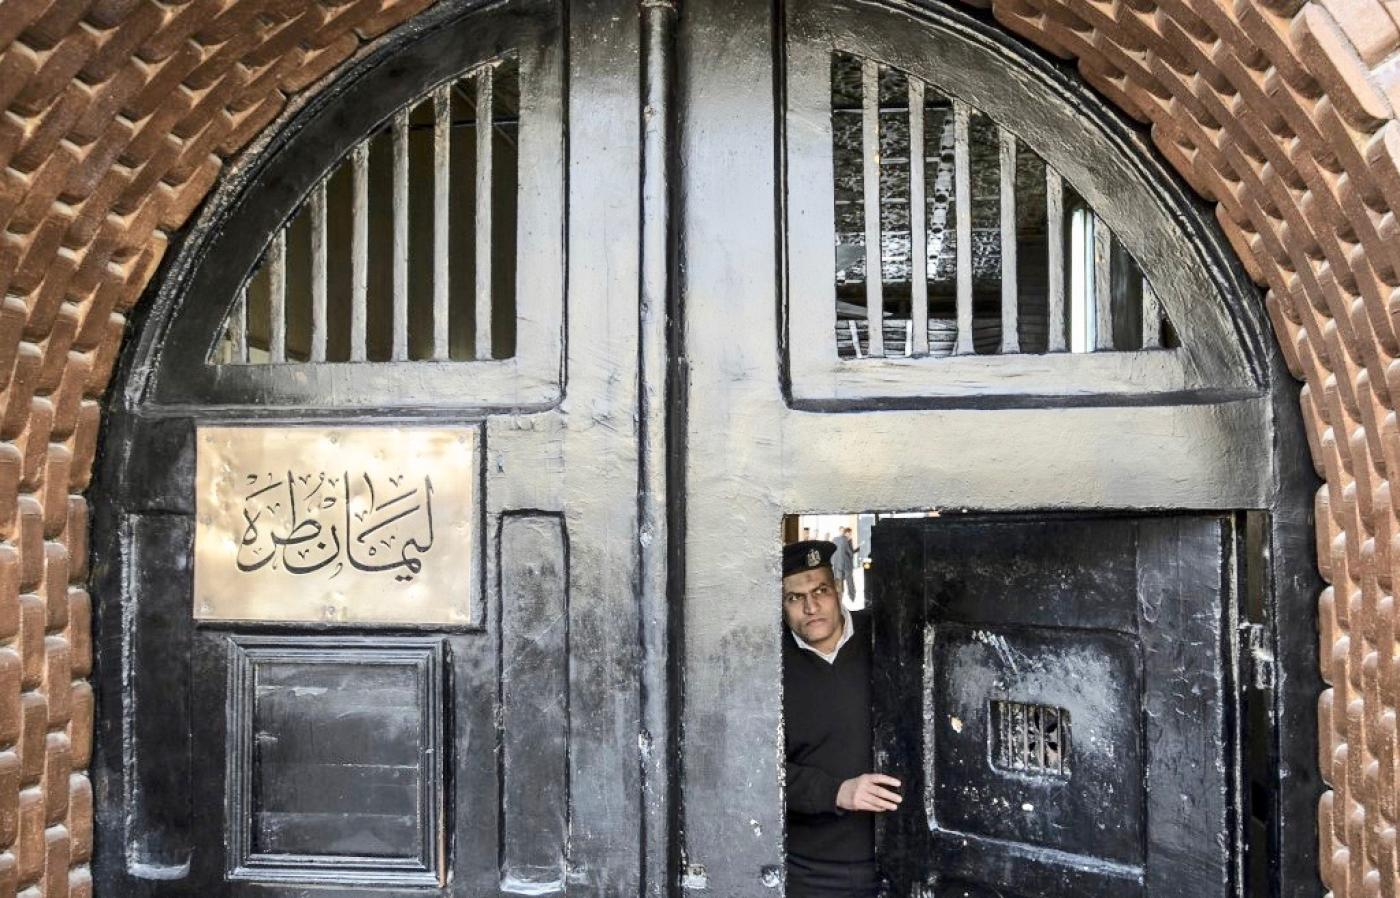 An Egyptian police officer stands in the entrance to Tora Prison, Cairo (https://www.middleeasteye.net/news/coronavirus-egypt-prison-letter-smuggled-out-doctors-who-want-help-fight-pandemic)